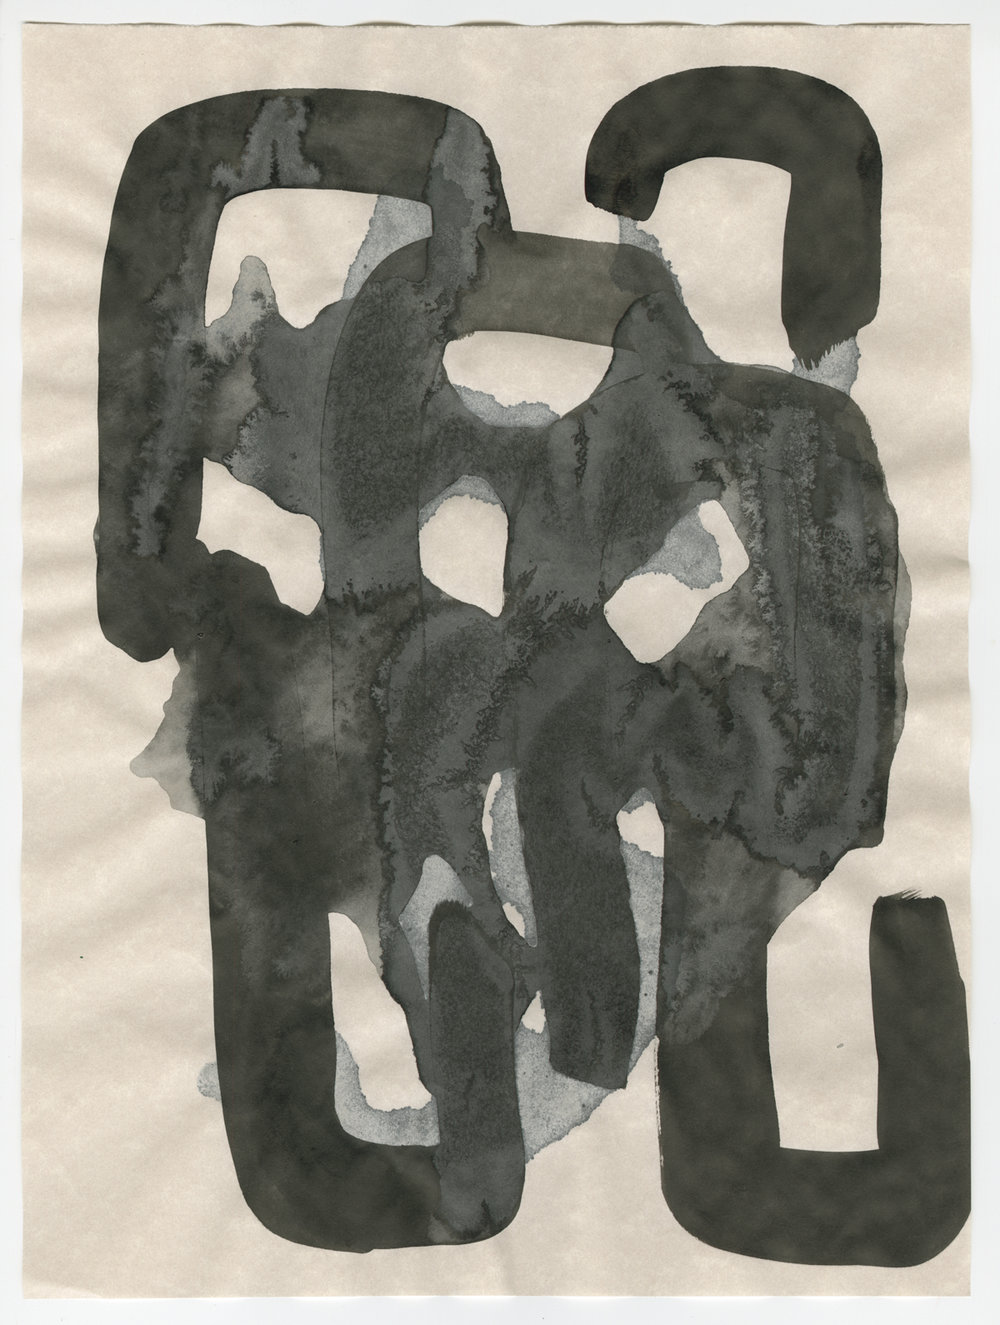 Untitled, ink on parchment, 2013, 13 3/4 x 10 ¾ inches